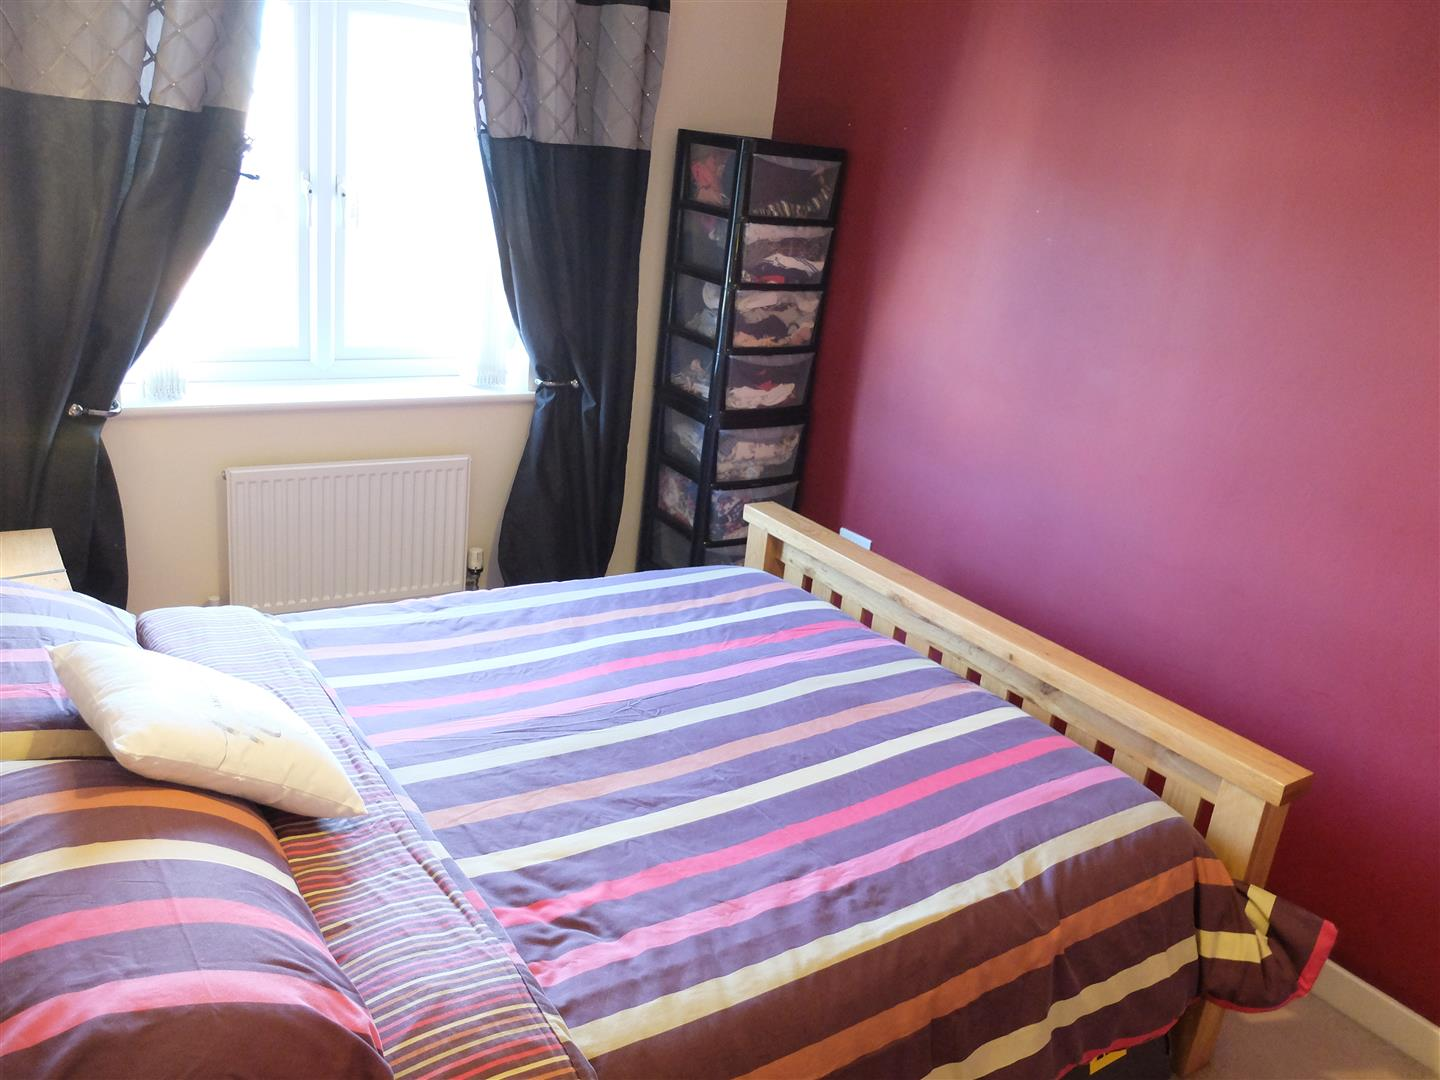 3 Bedrooms House - Semi-Detached For Sale 42 Cavaghan Gardens Carlisle 129,995